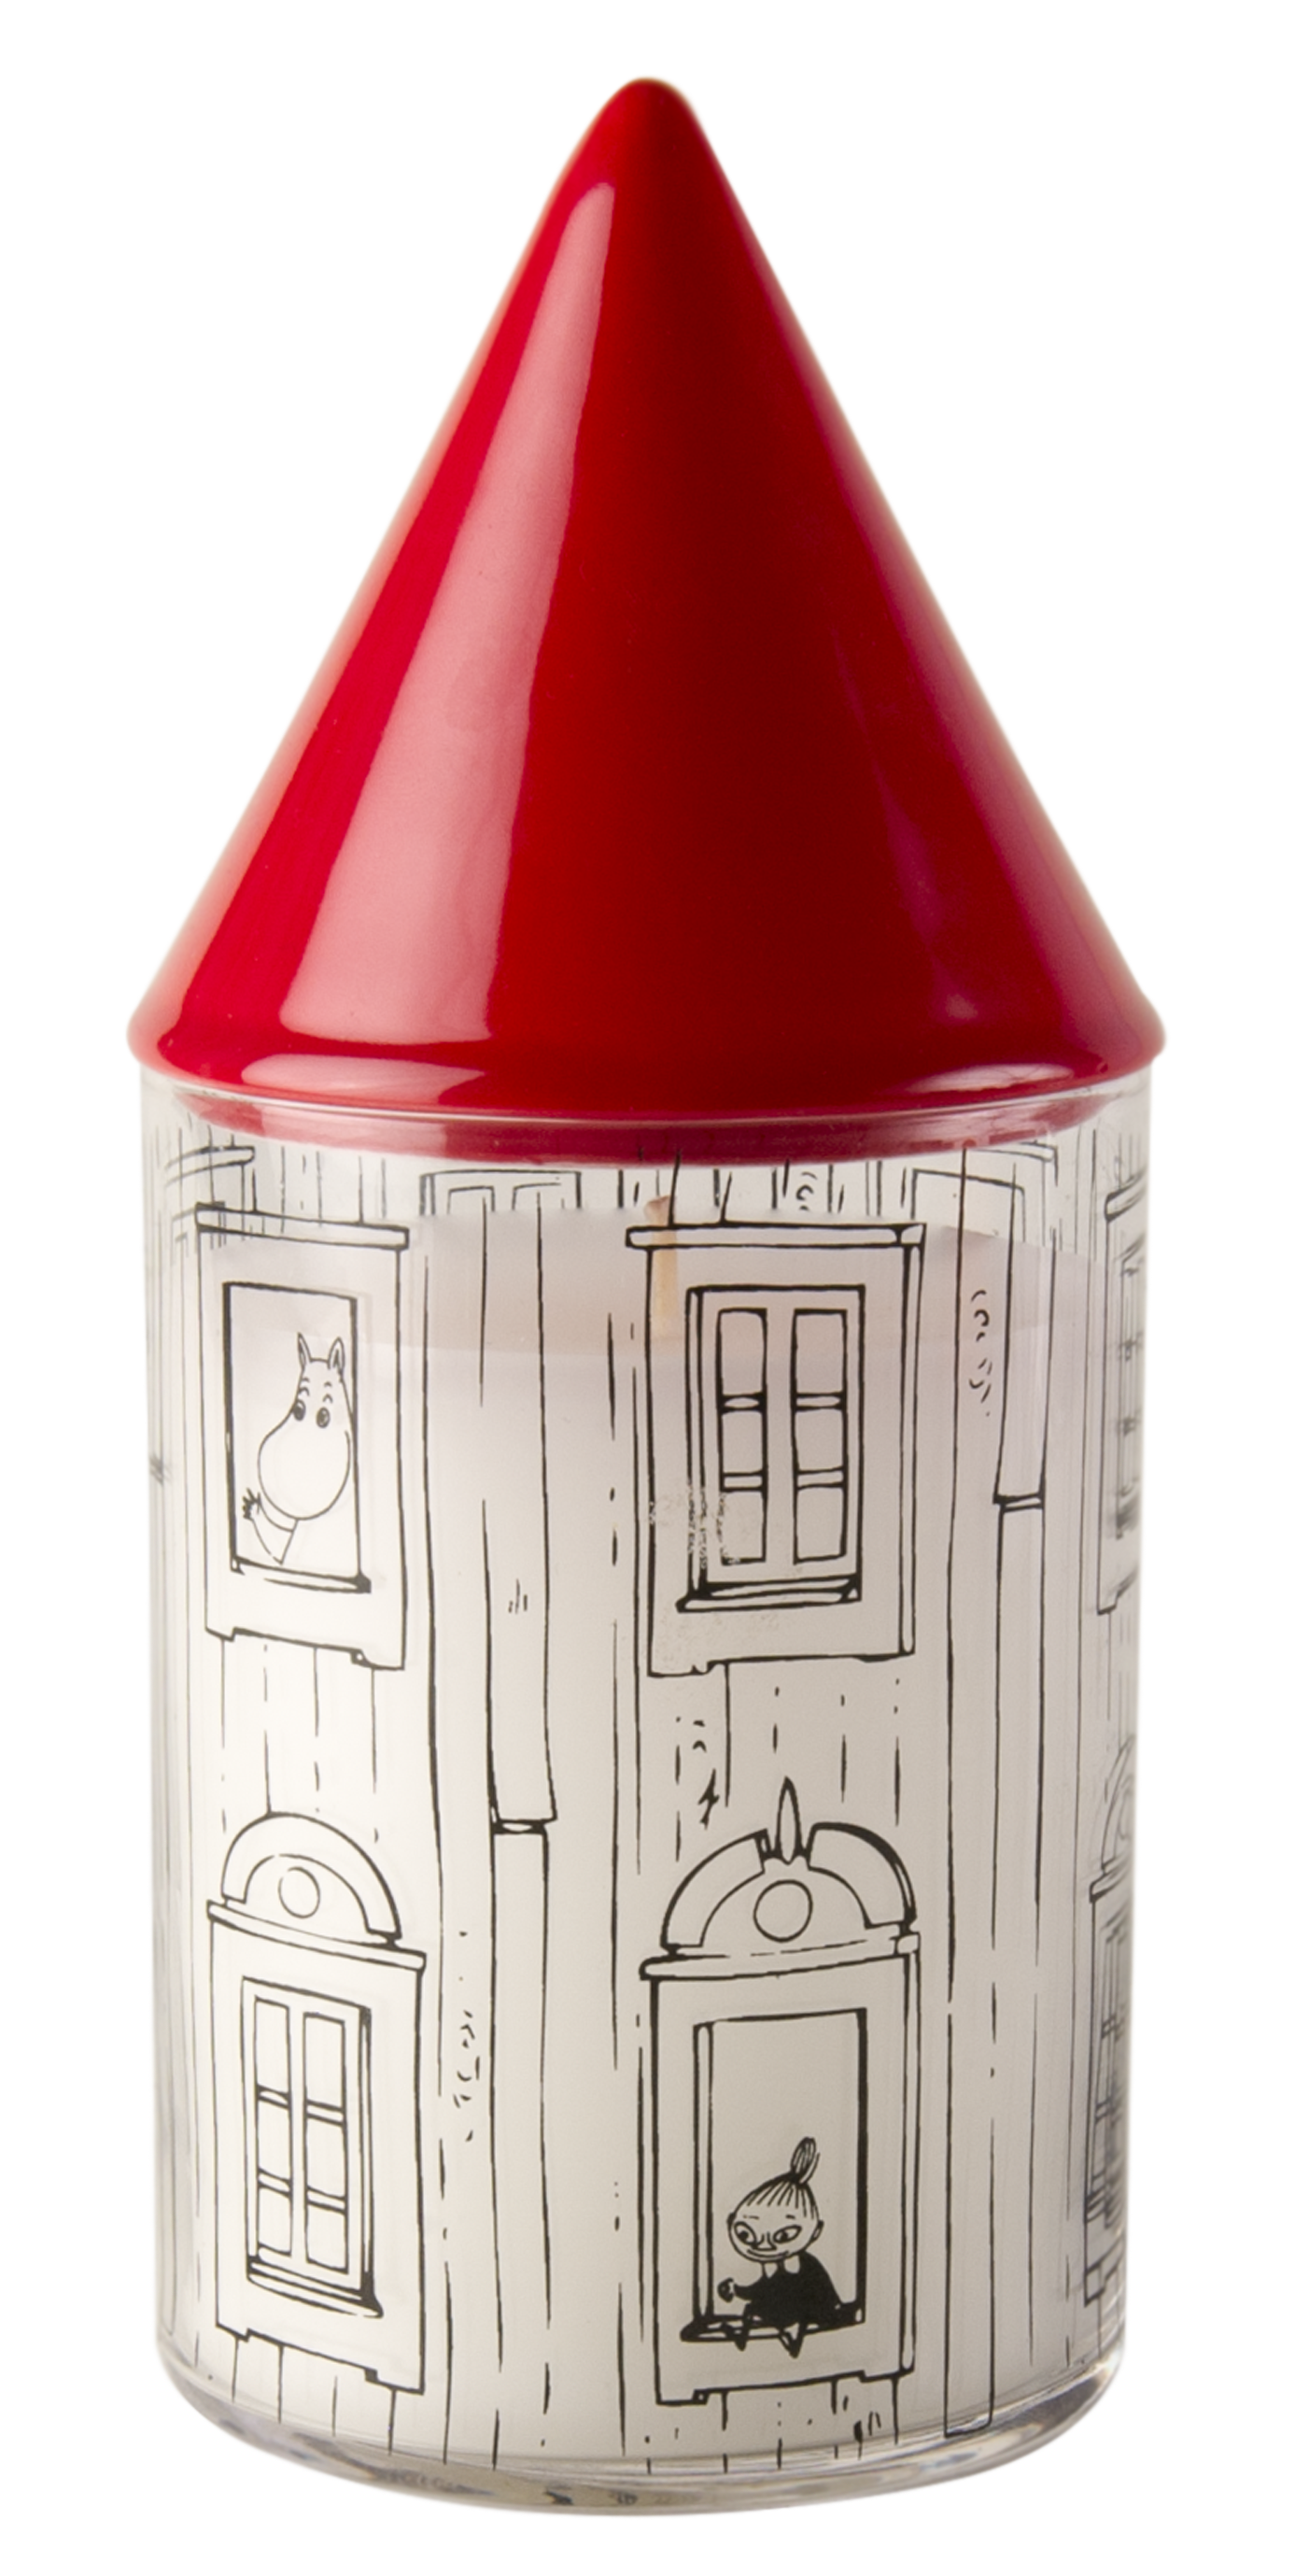 Muurla Moominhouse candle with extinguisher